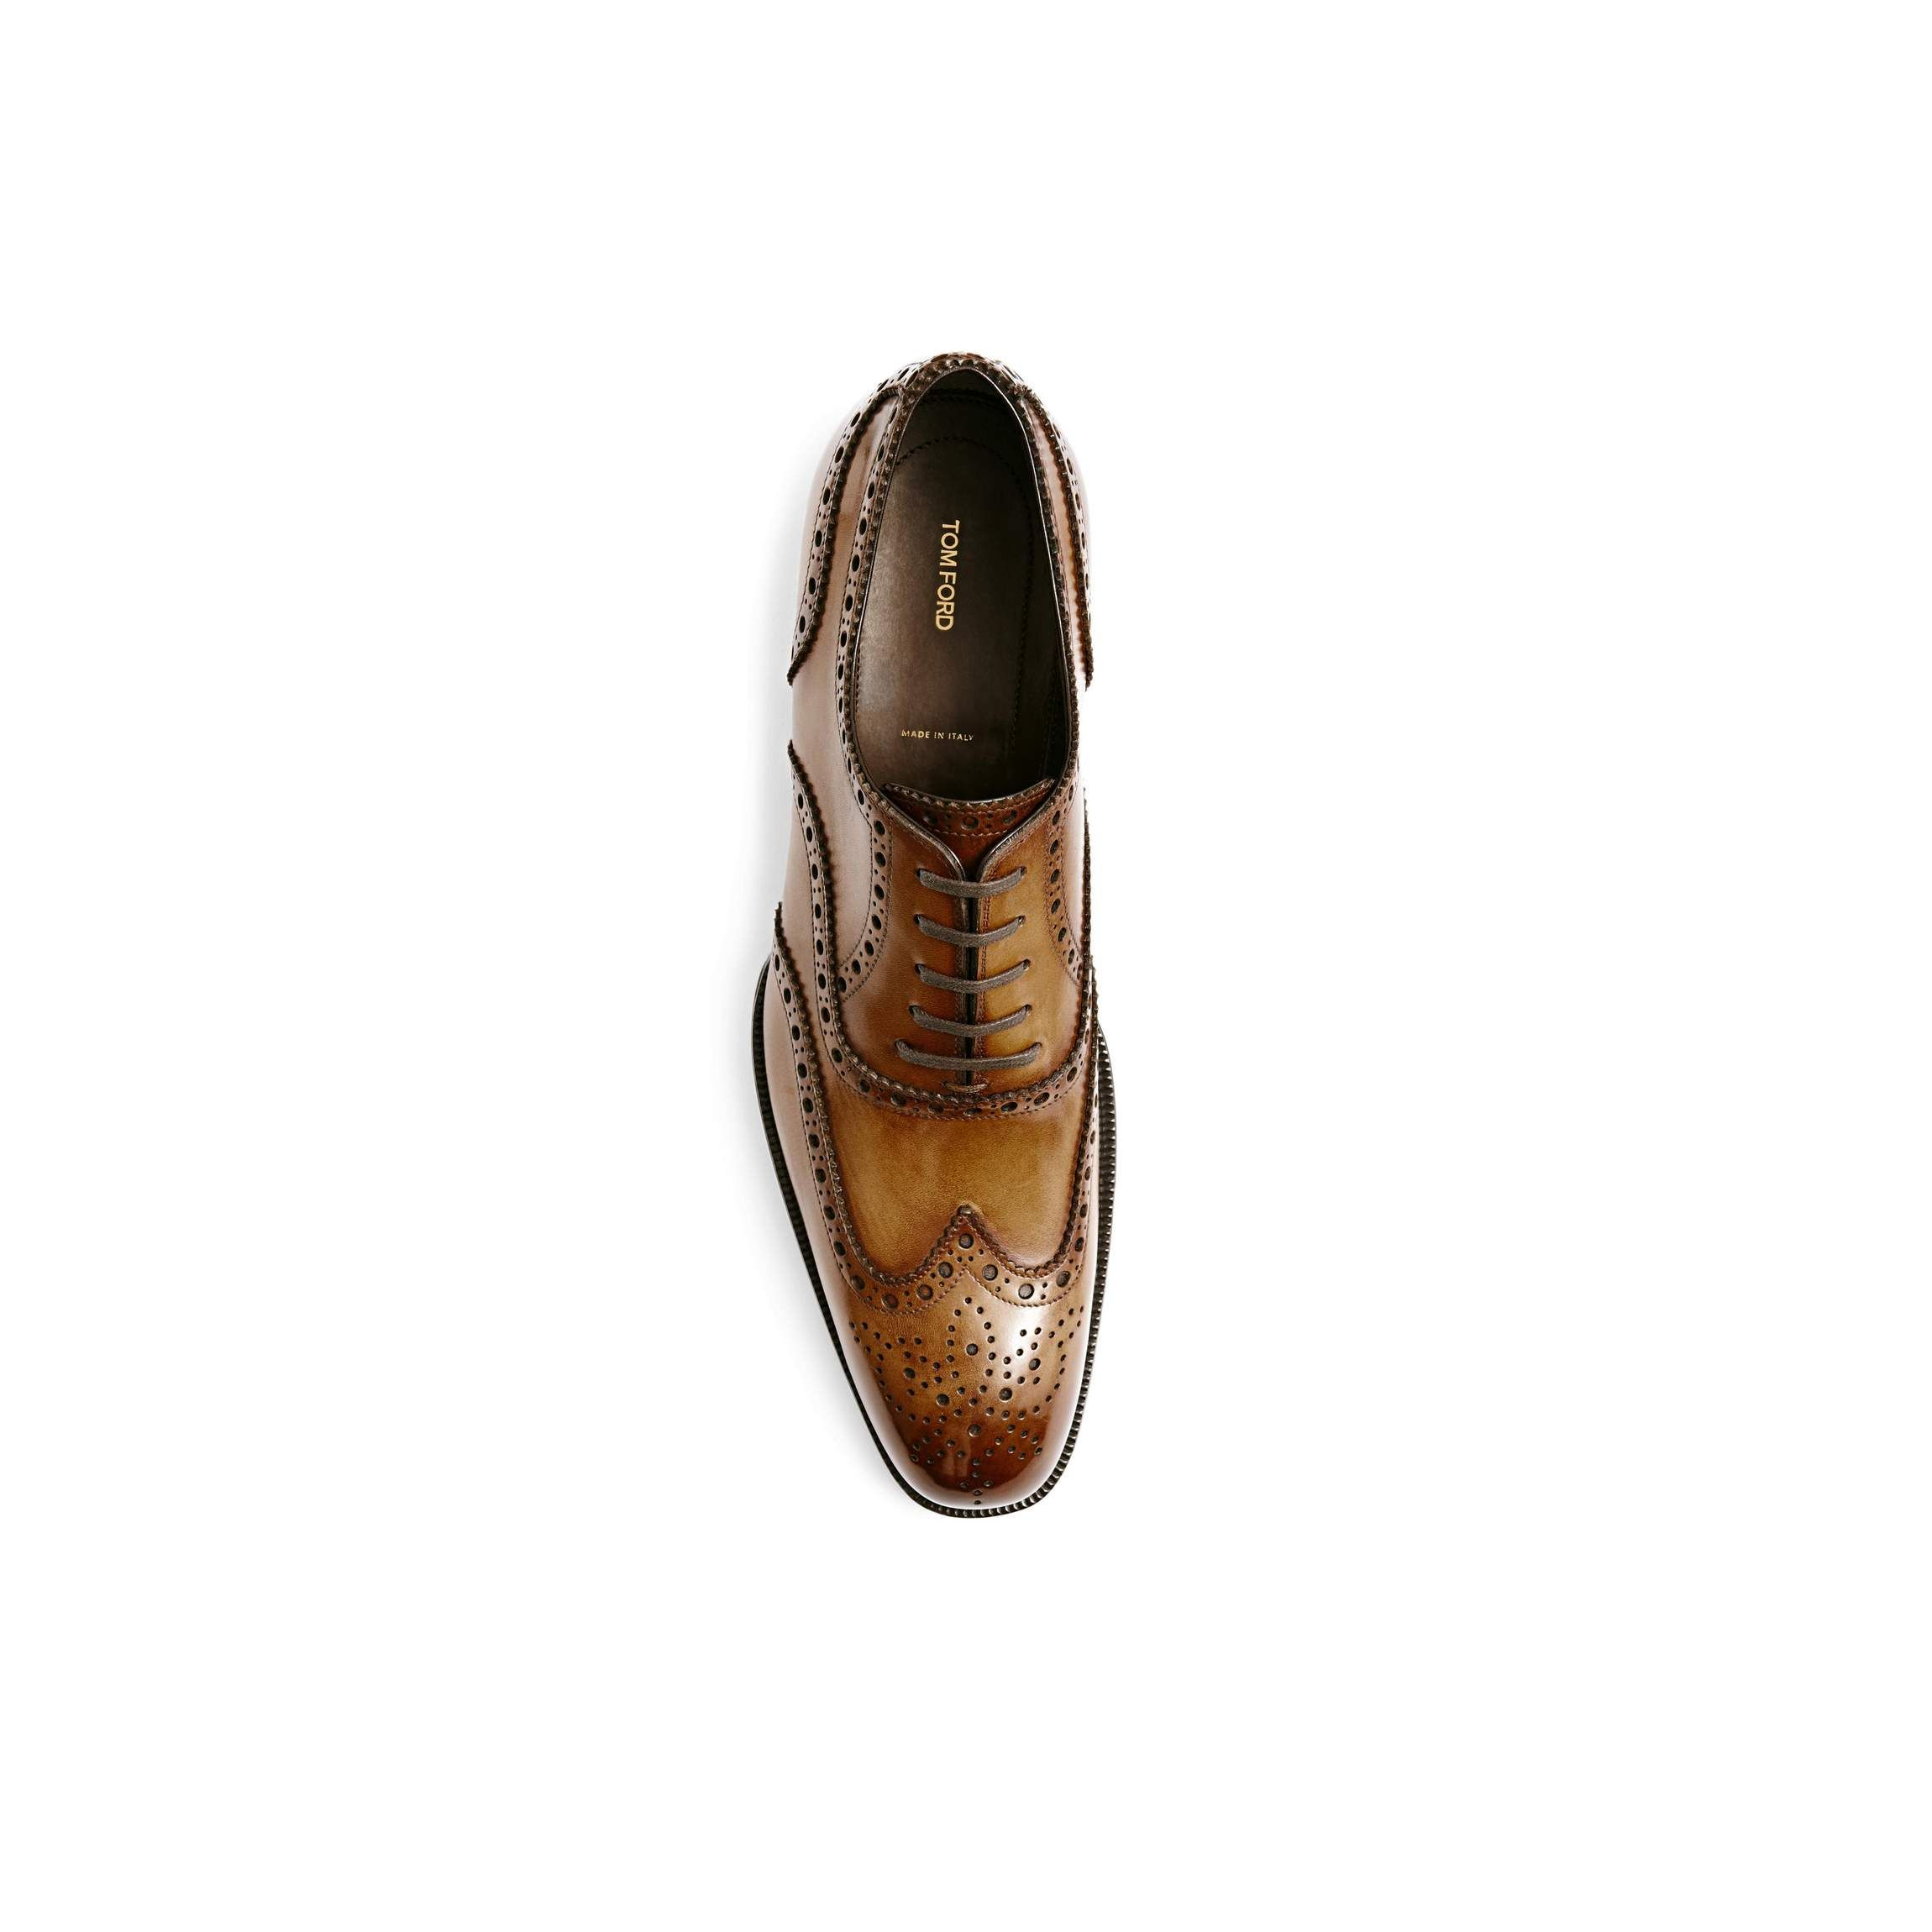 Tom Ford Edward hand-polished brown burnished leather French brogue wingtip lace-up.